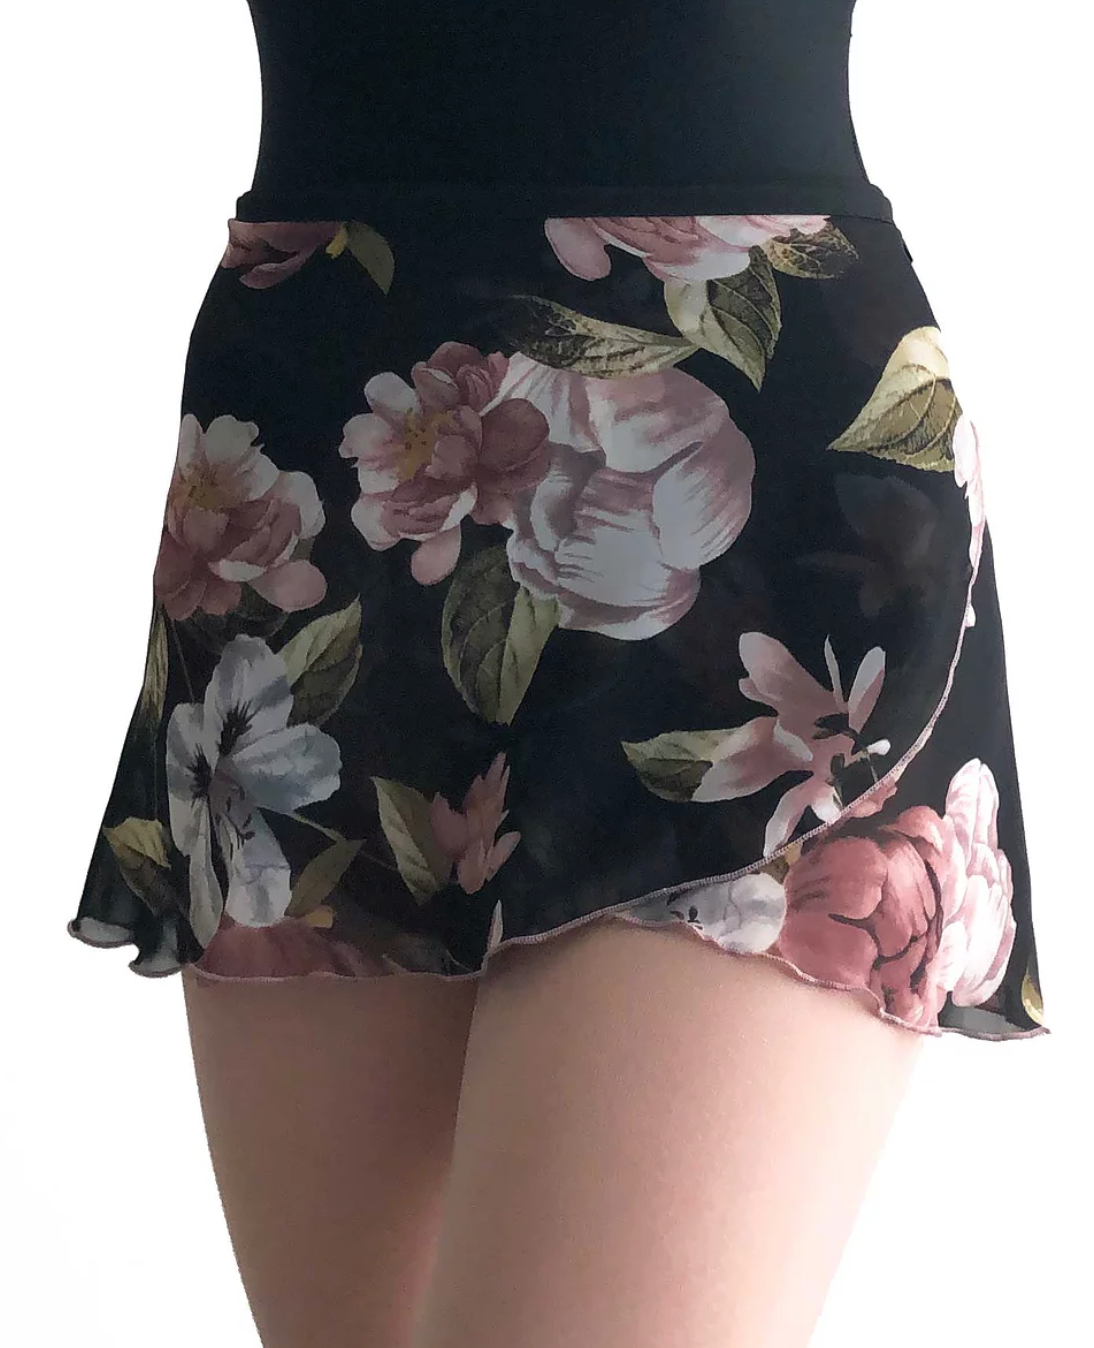 Jule Dancewear Gardenia Night Wrap Skirt - WS134